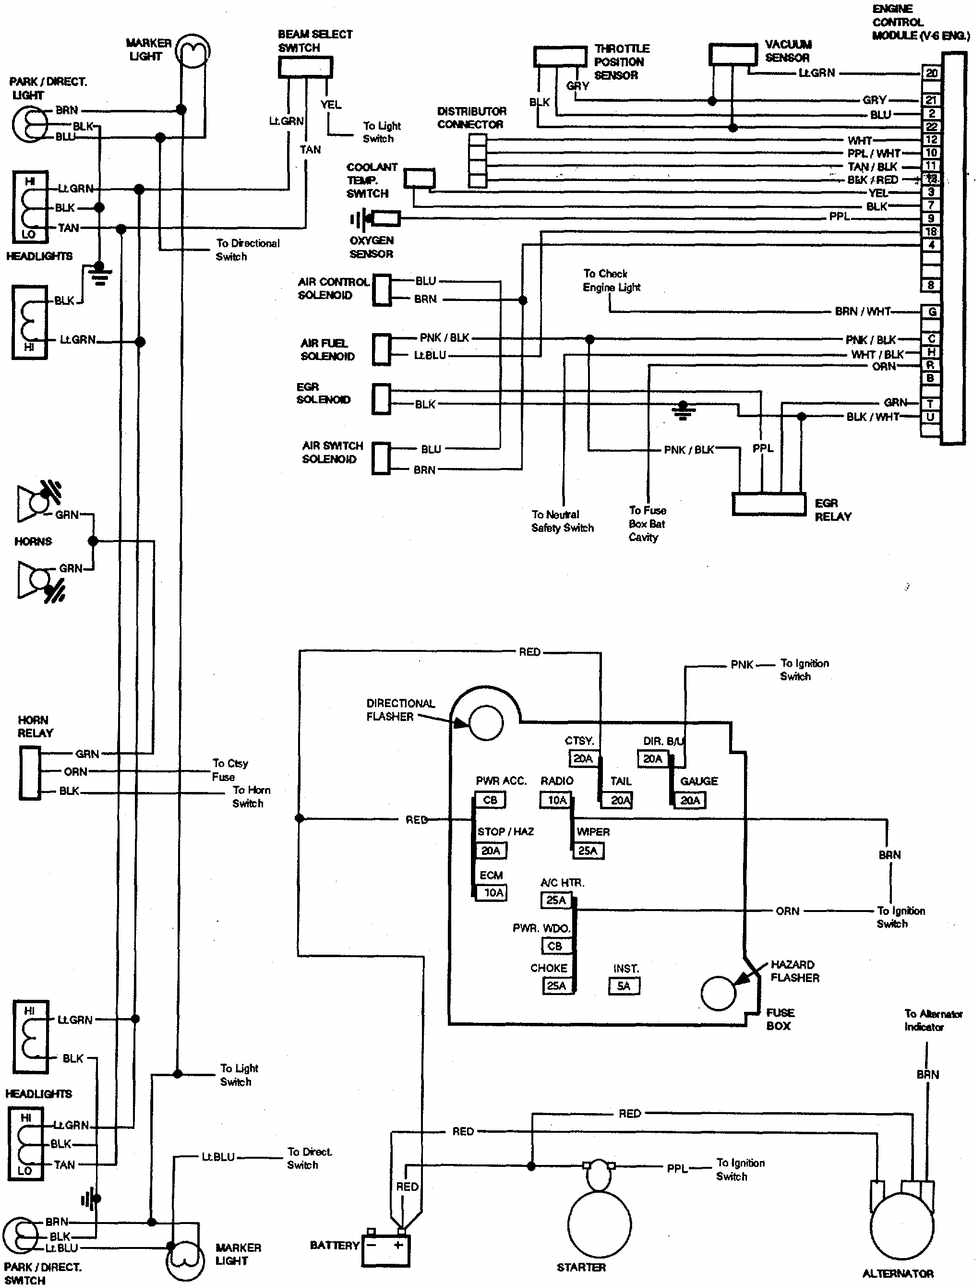 chevy s wiring diagram discover your wiring diagram 95 chevy tahoe ignition wiring diagram